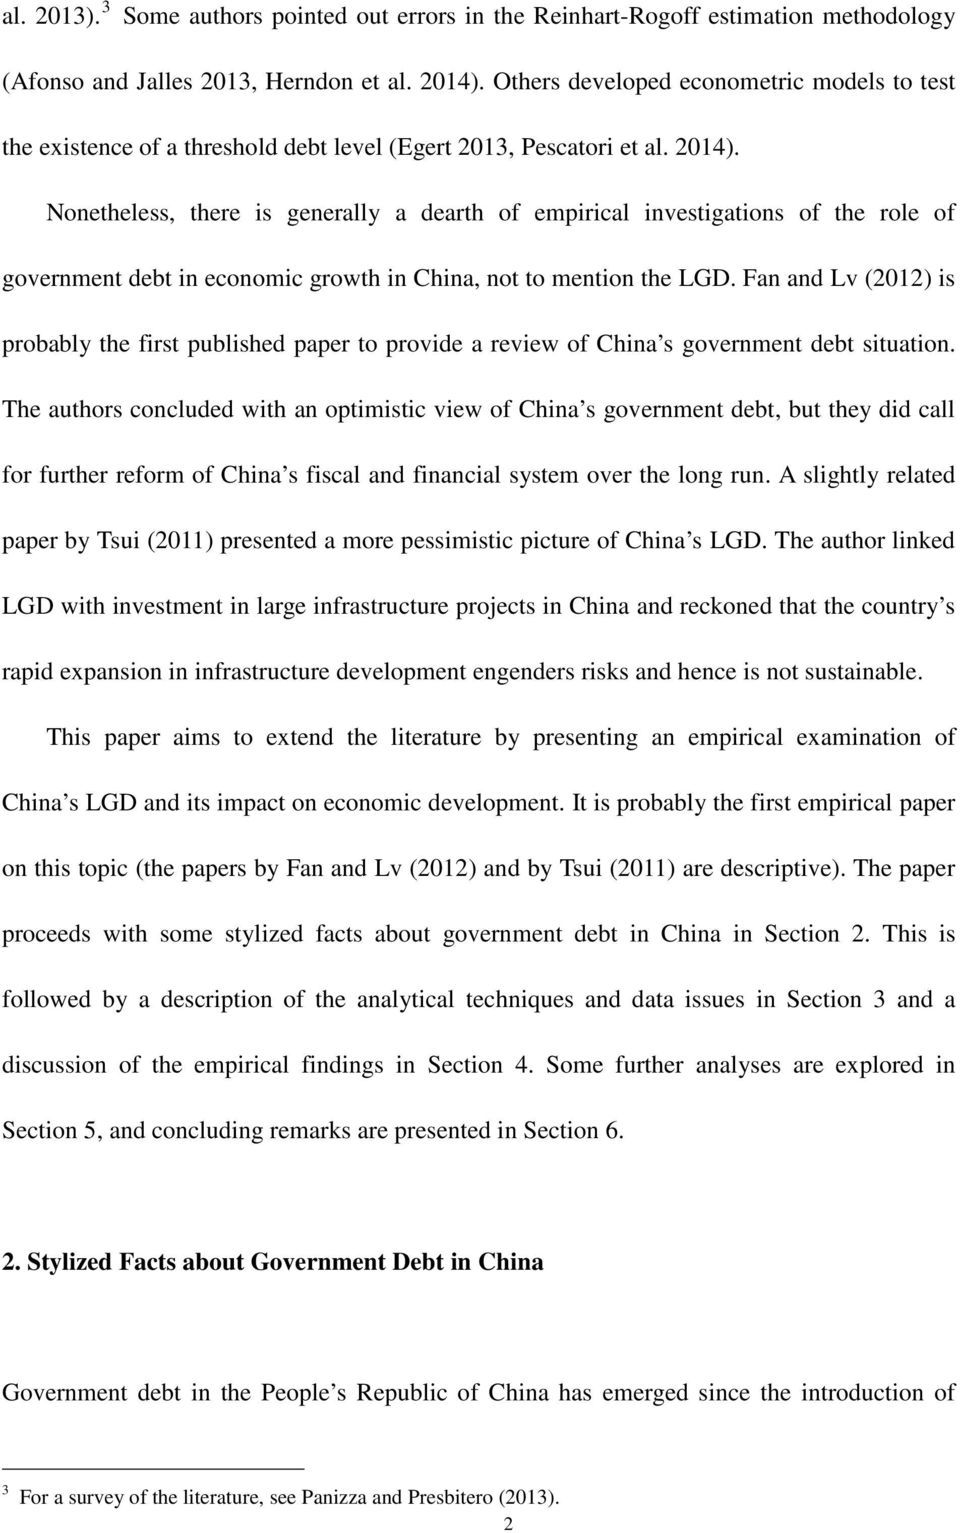 Nonetheless, there is generally a dearth of empirical investigations of the role of government debt in economic growth in China, not to mention the LGD.